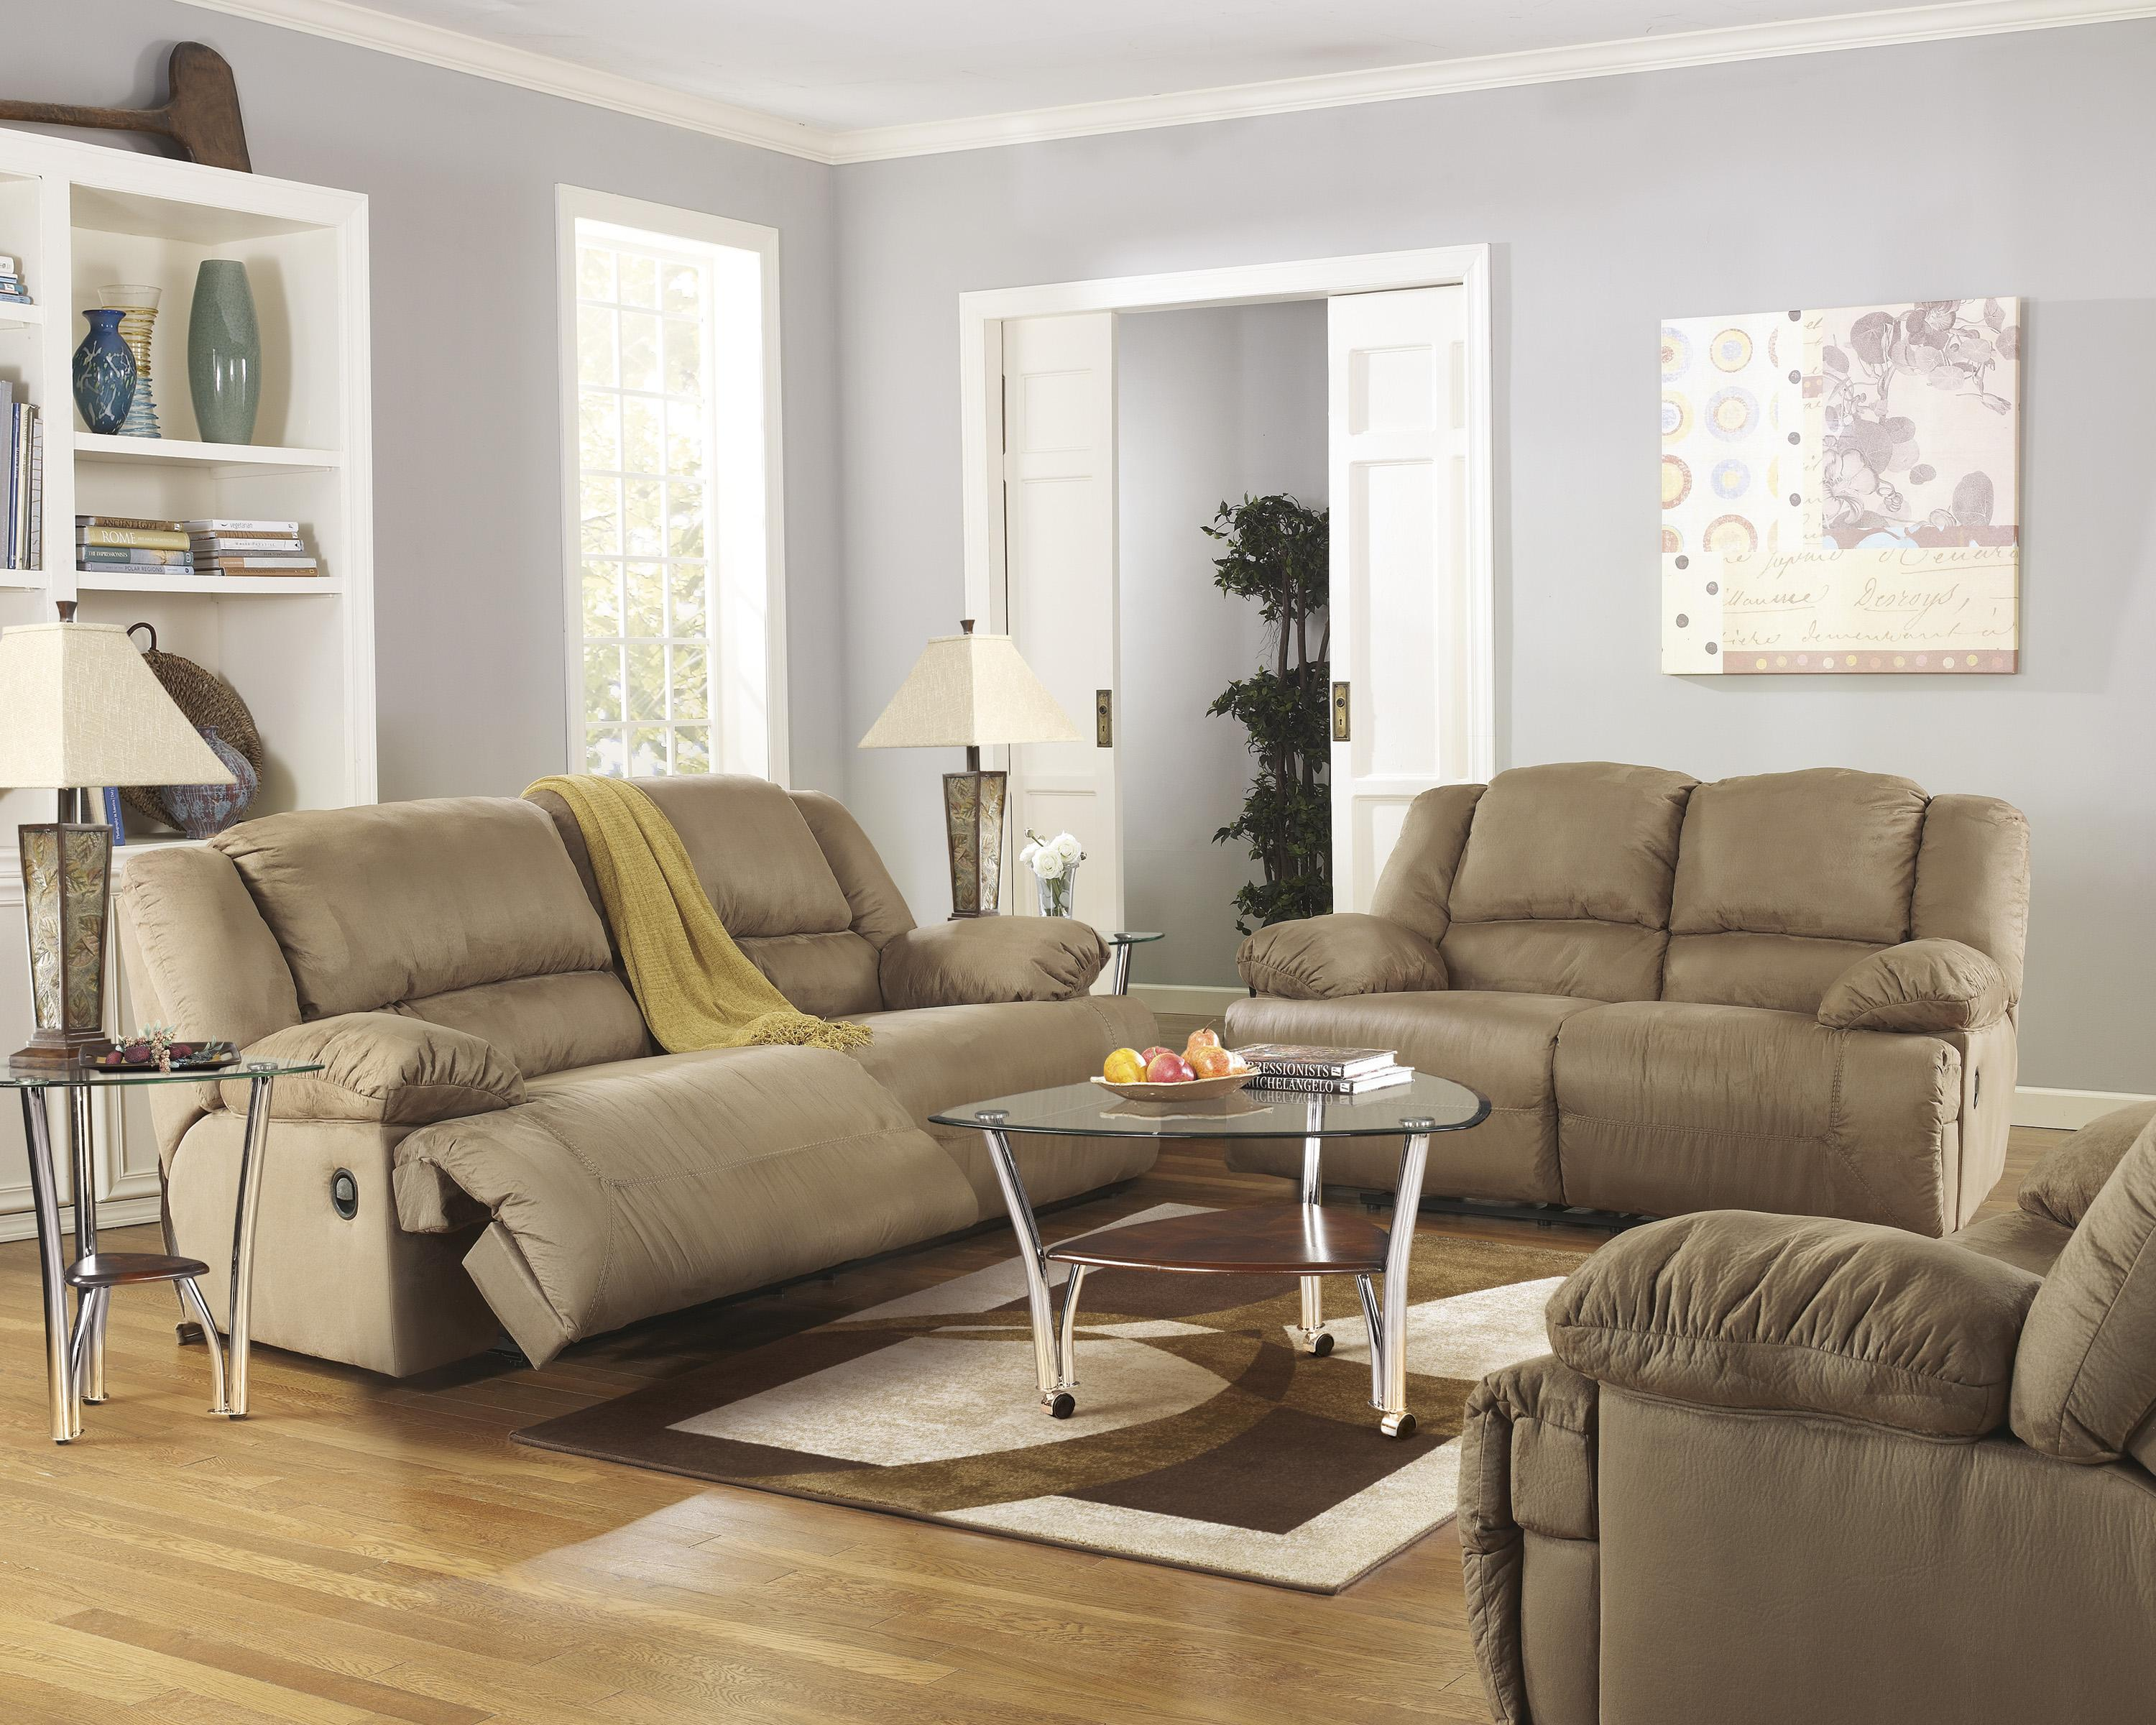 Signature Design by Ashley Hogan Mocha 5 Piece Motion Sectional